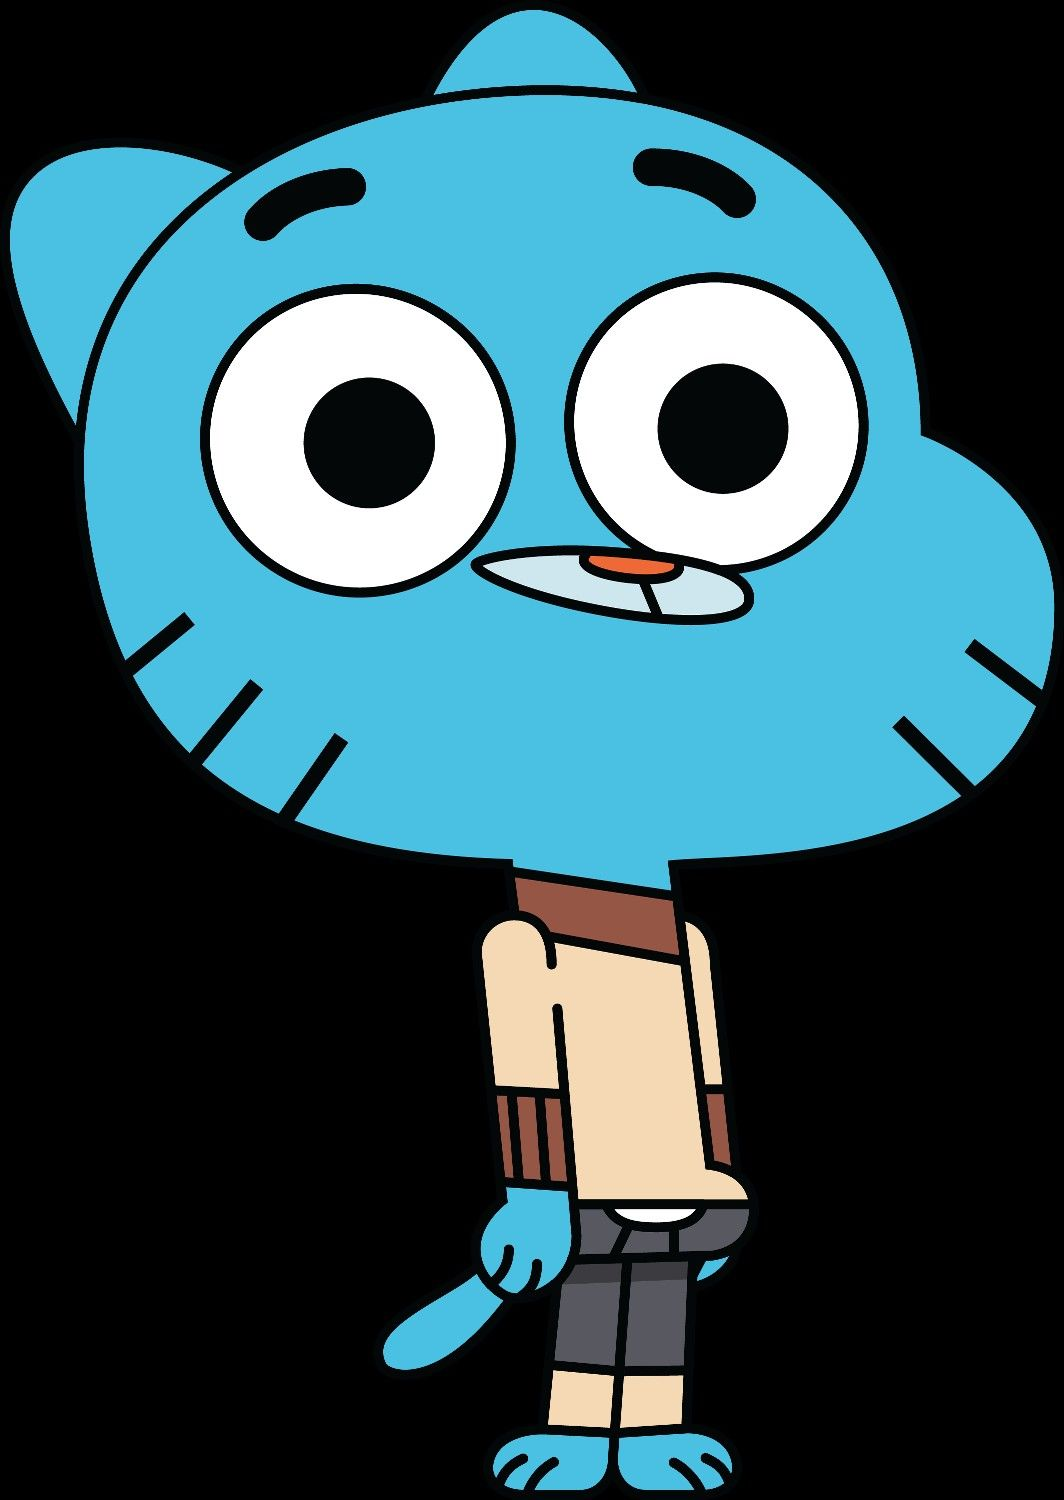 Pin By Janine Innamorato Haire On The Amazing World Of James At 7 The Amazing World Of Gumball World Of Gumball Adventures Of Gumball